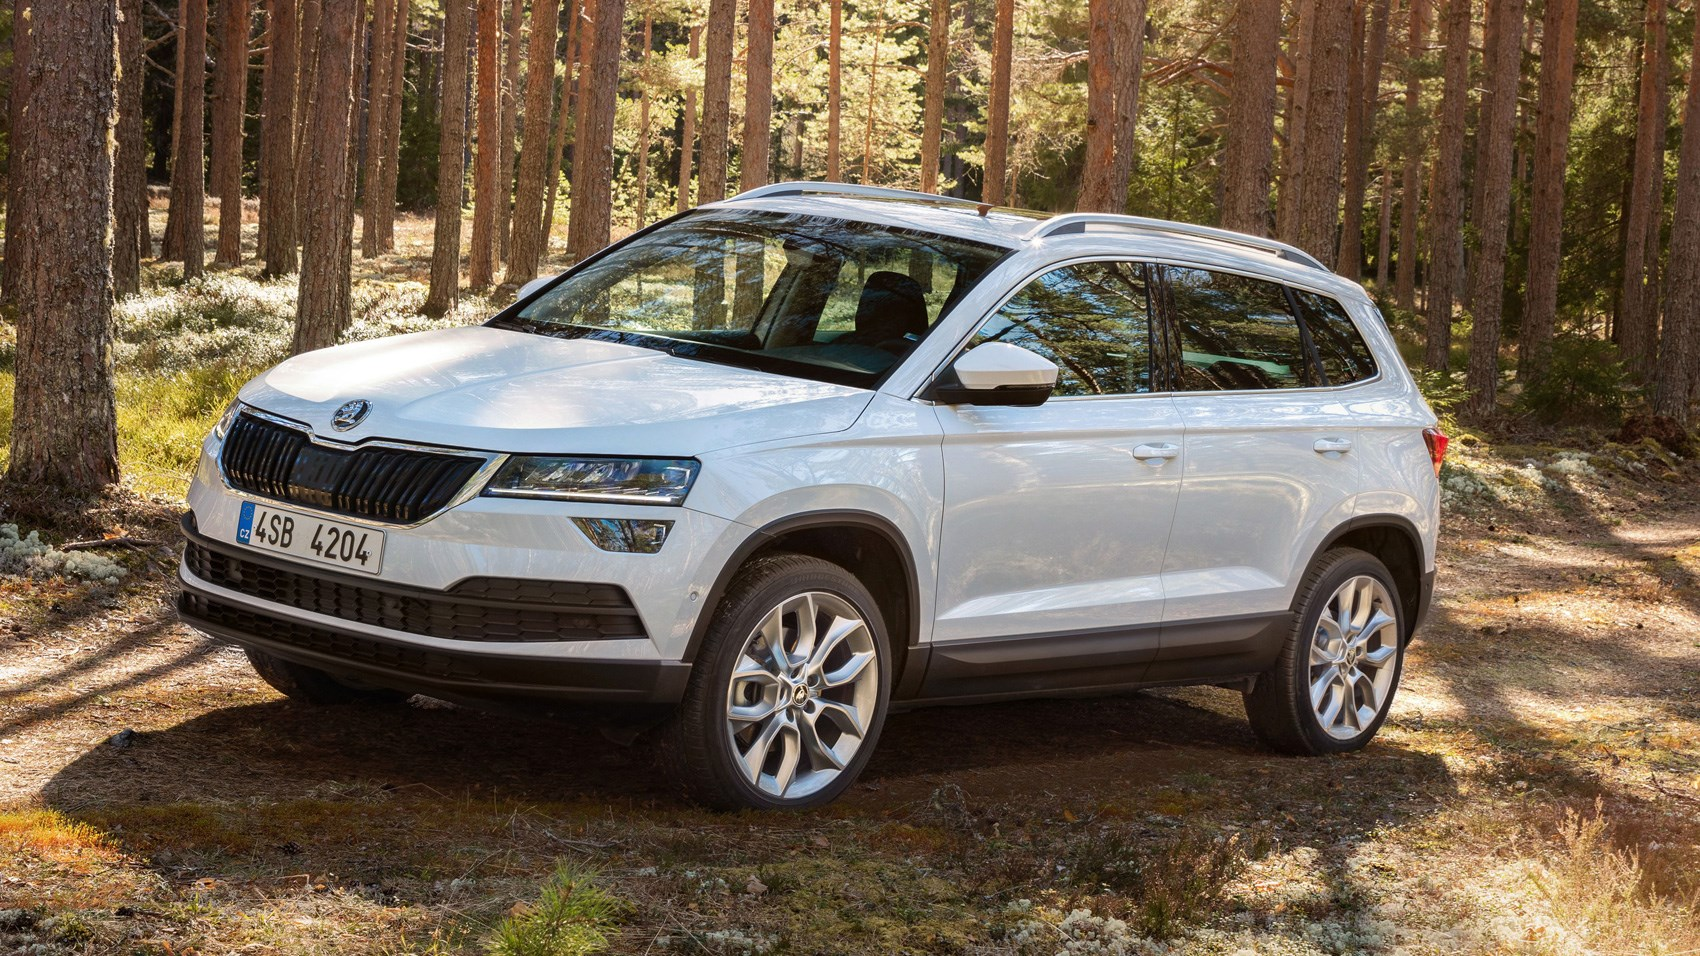 Skoda Karoq (2017) review: honey, I shrunk the Kodiaq | CAR Magazine